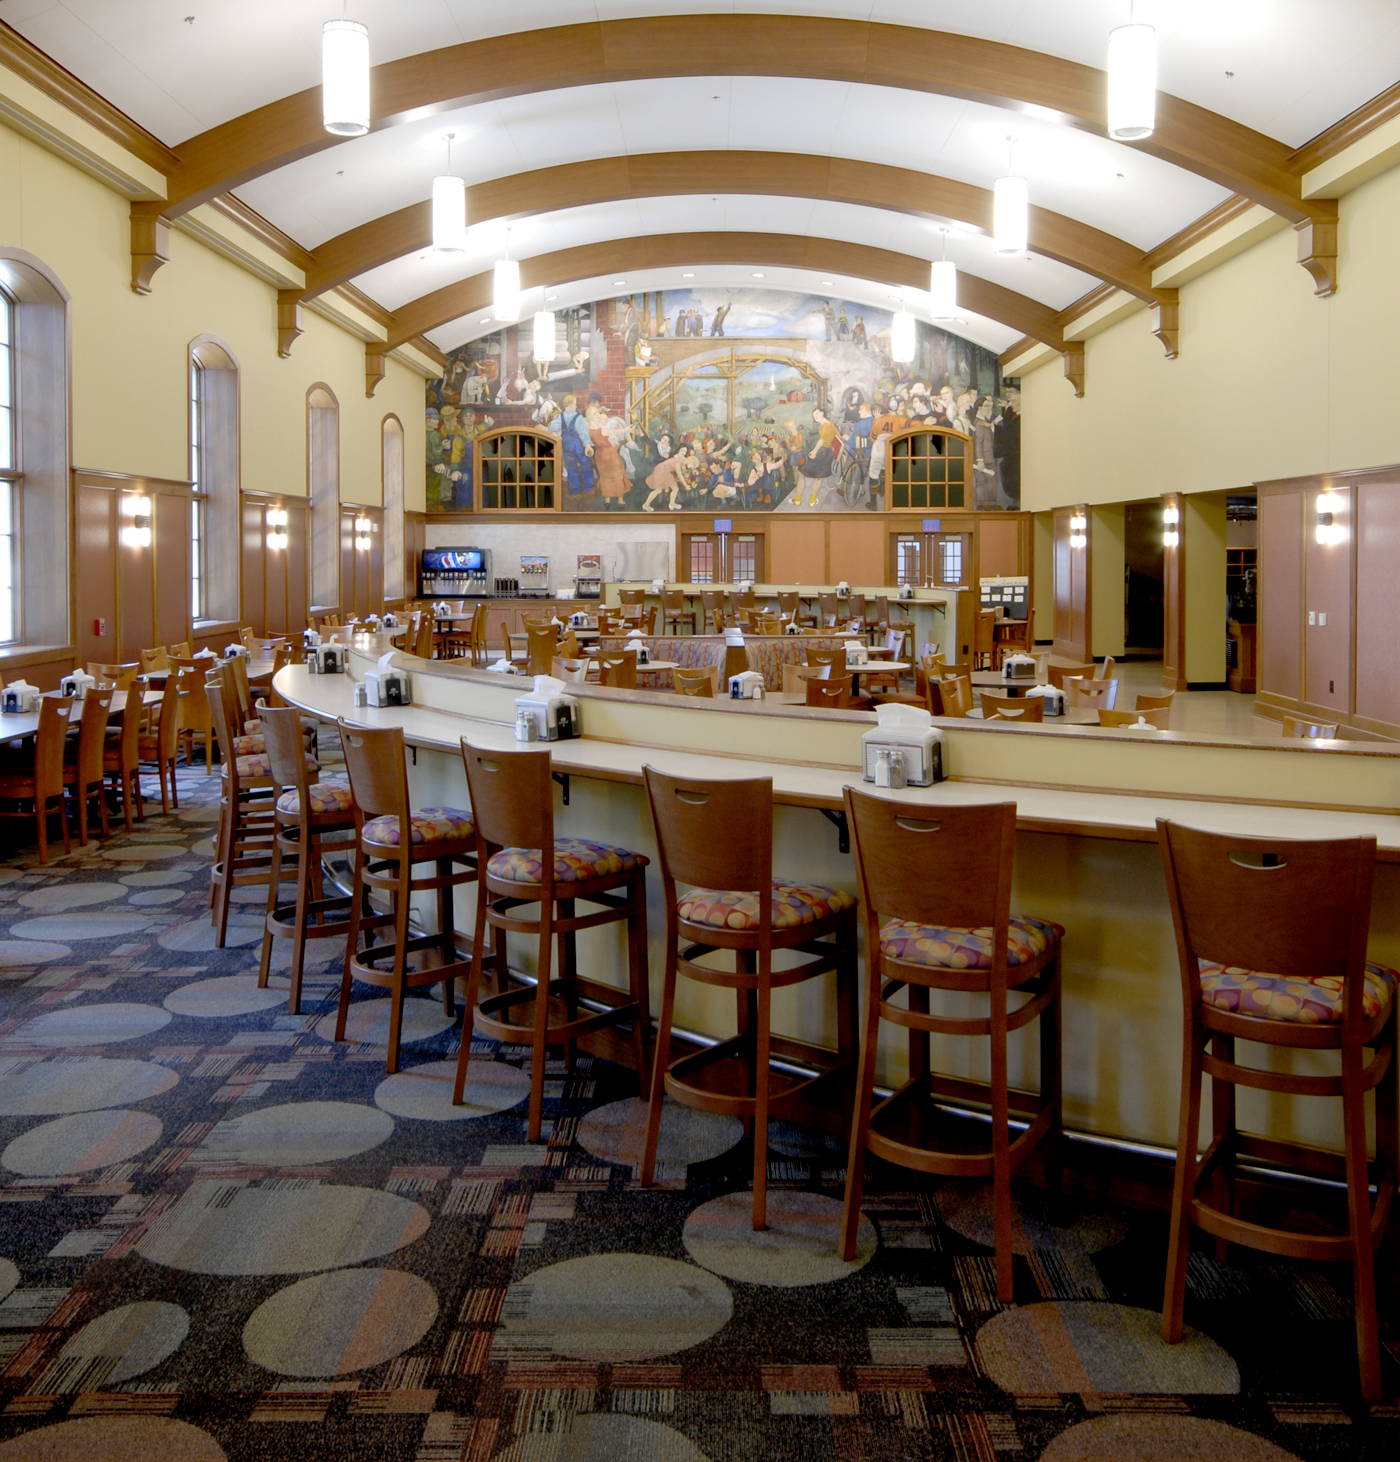 Welles Dining Hall